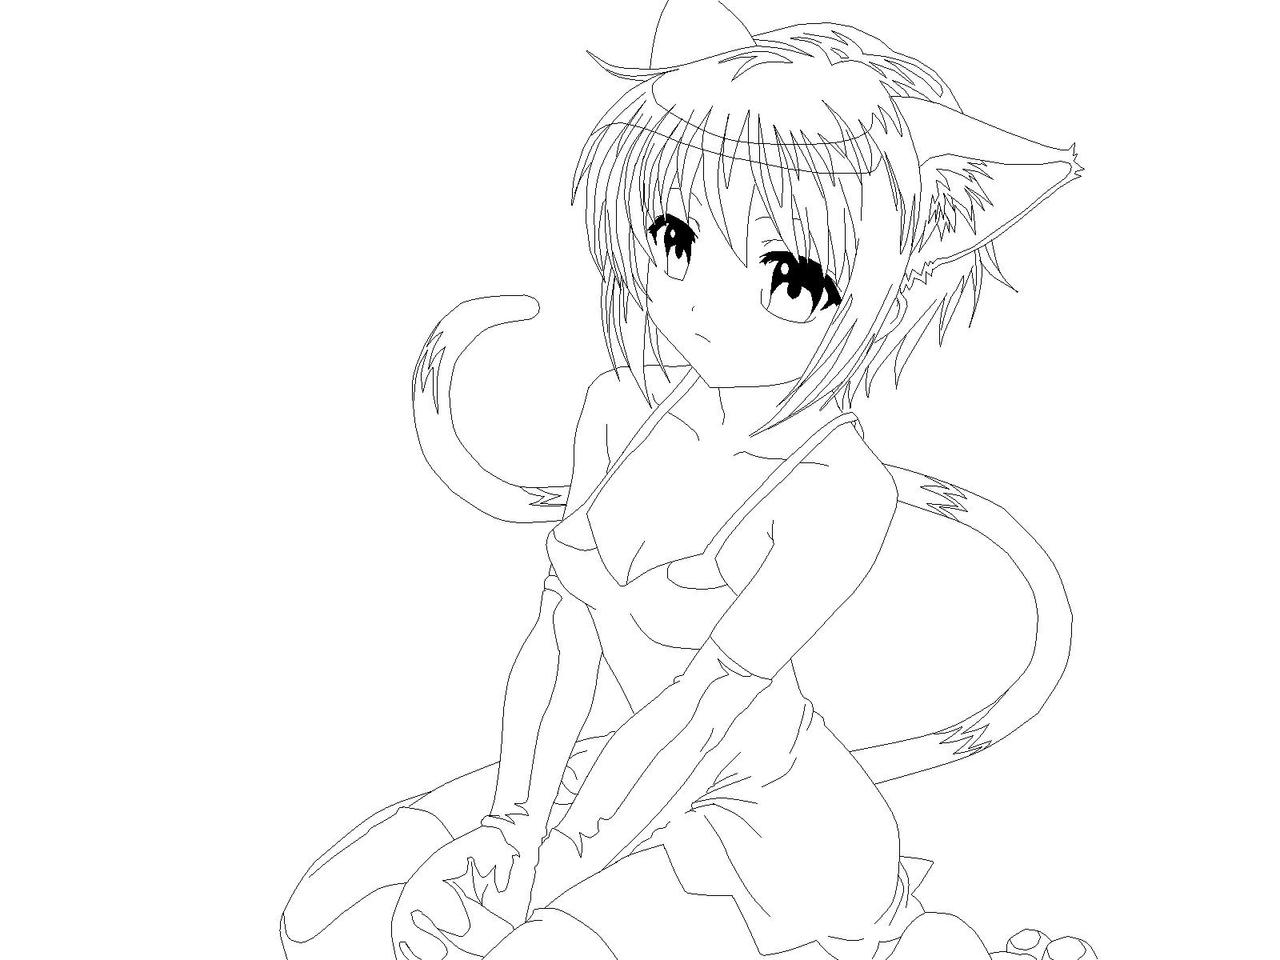 How To Draw A Manga Cat Girl  Solution for how to for dummies